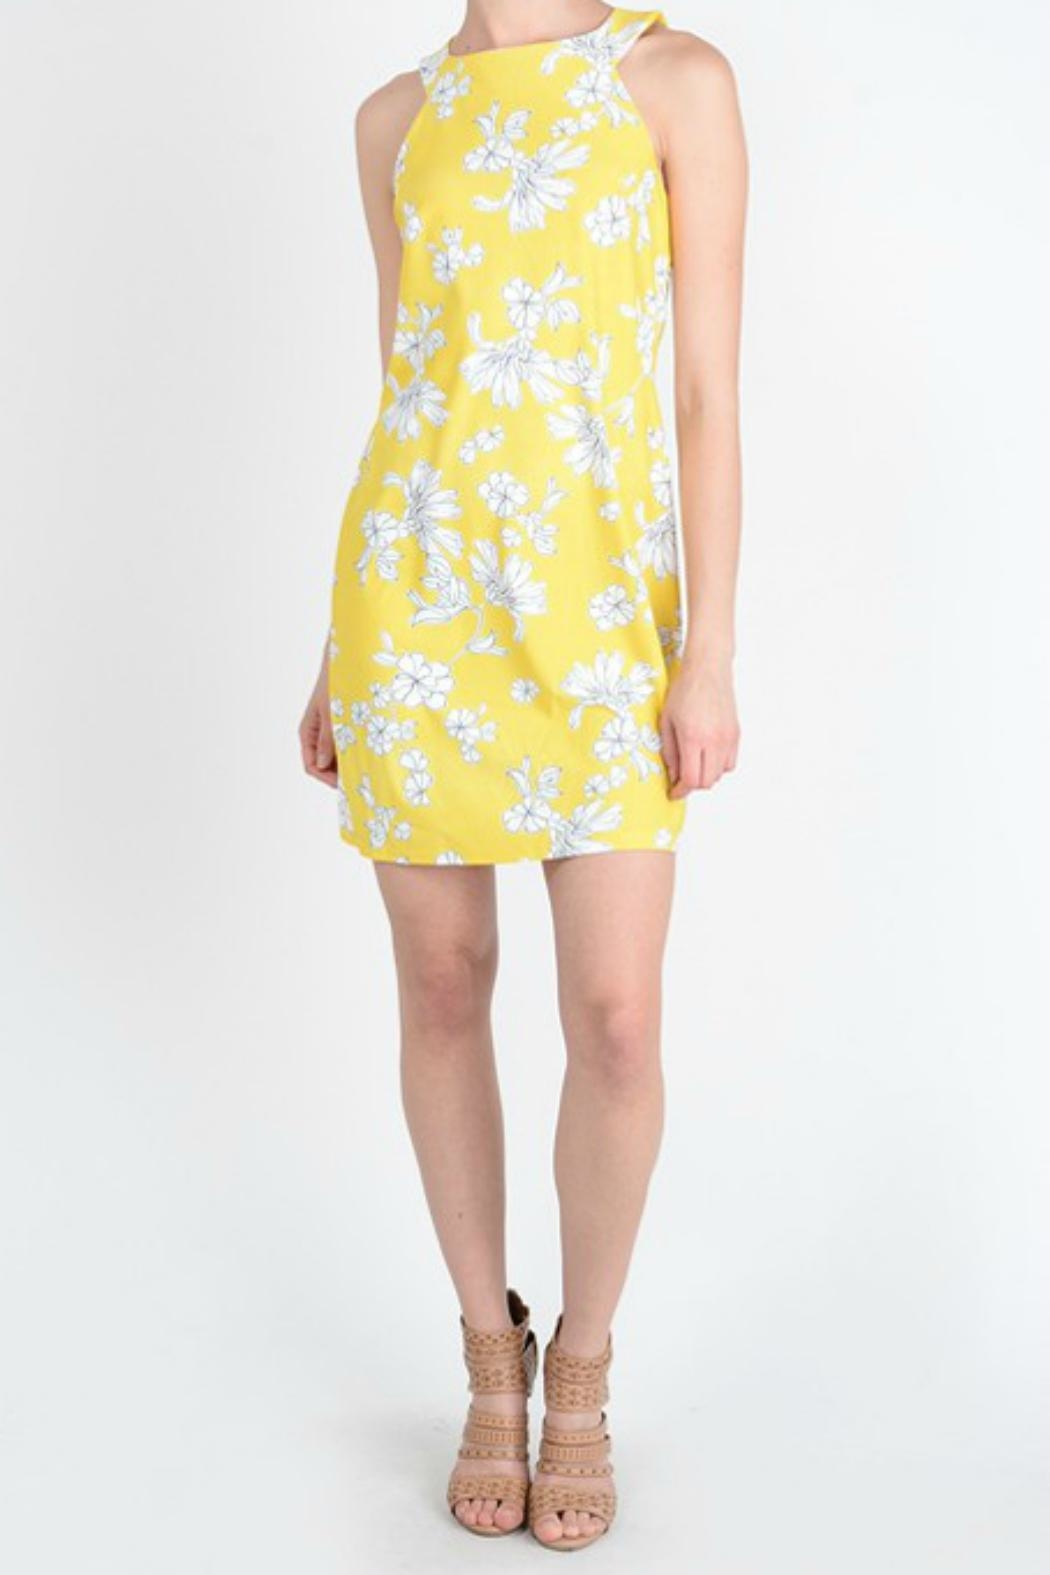 Aryeh Yellow Floral Dress - Main Image